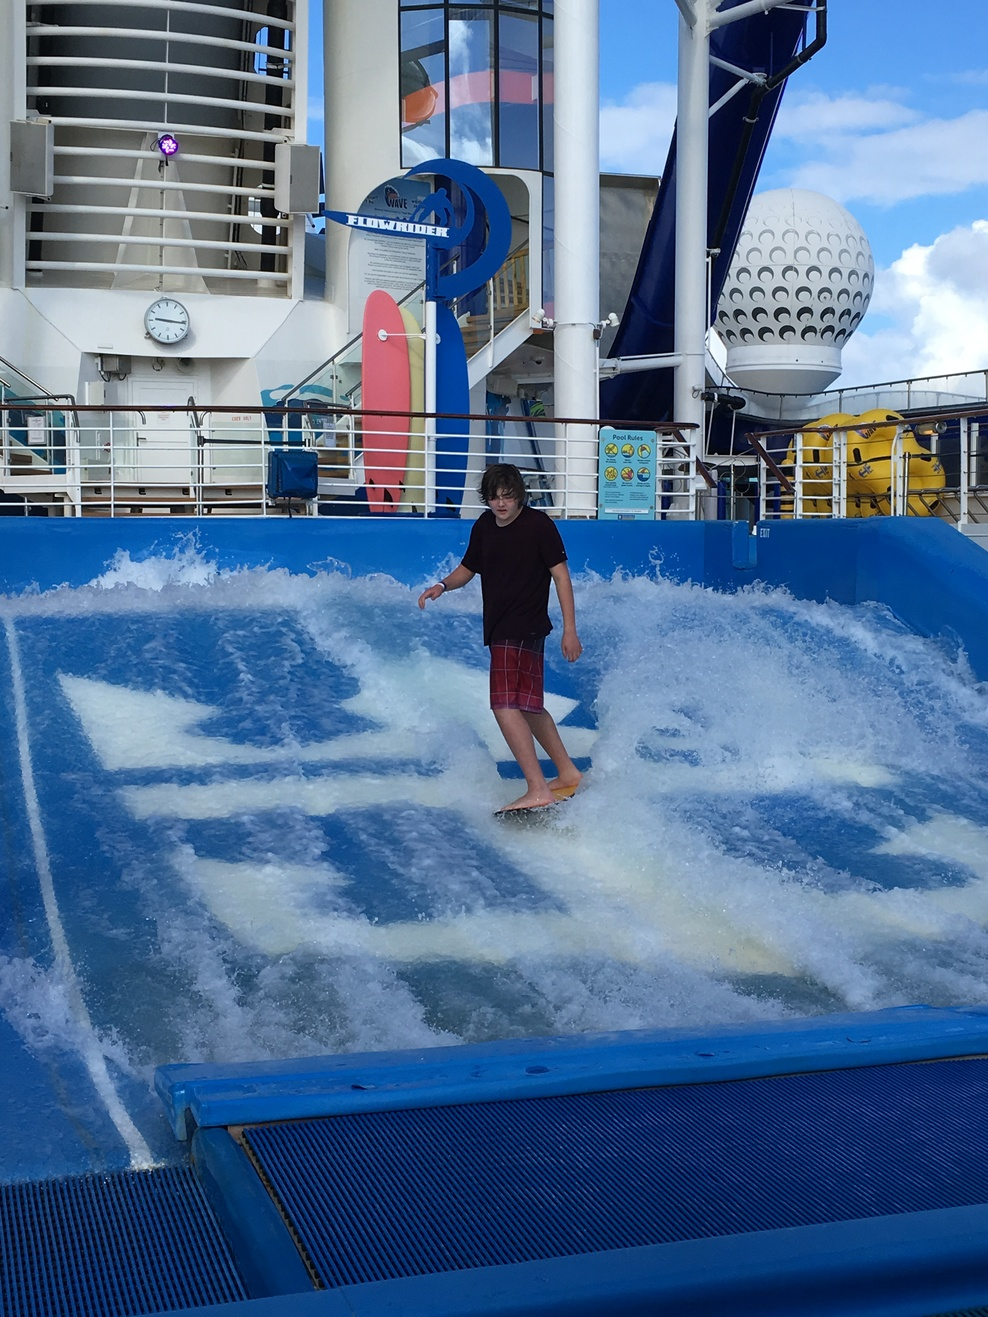 We had a blast on the Flow Rider!